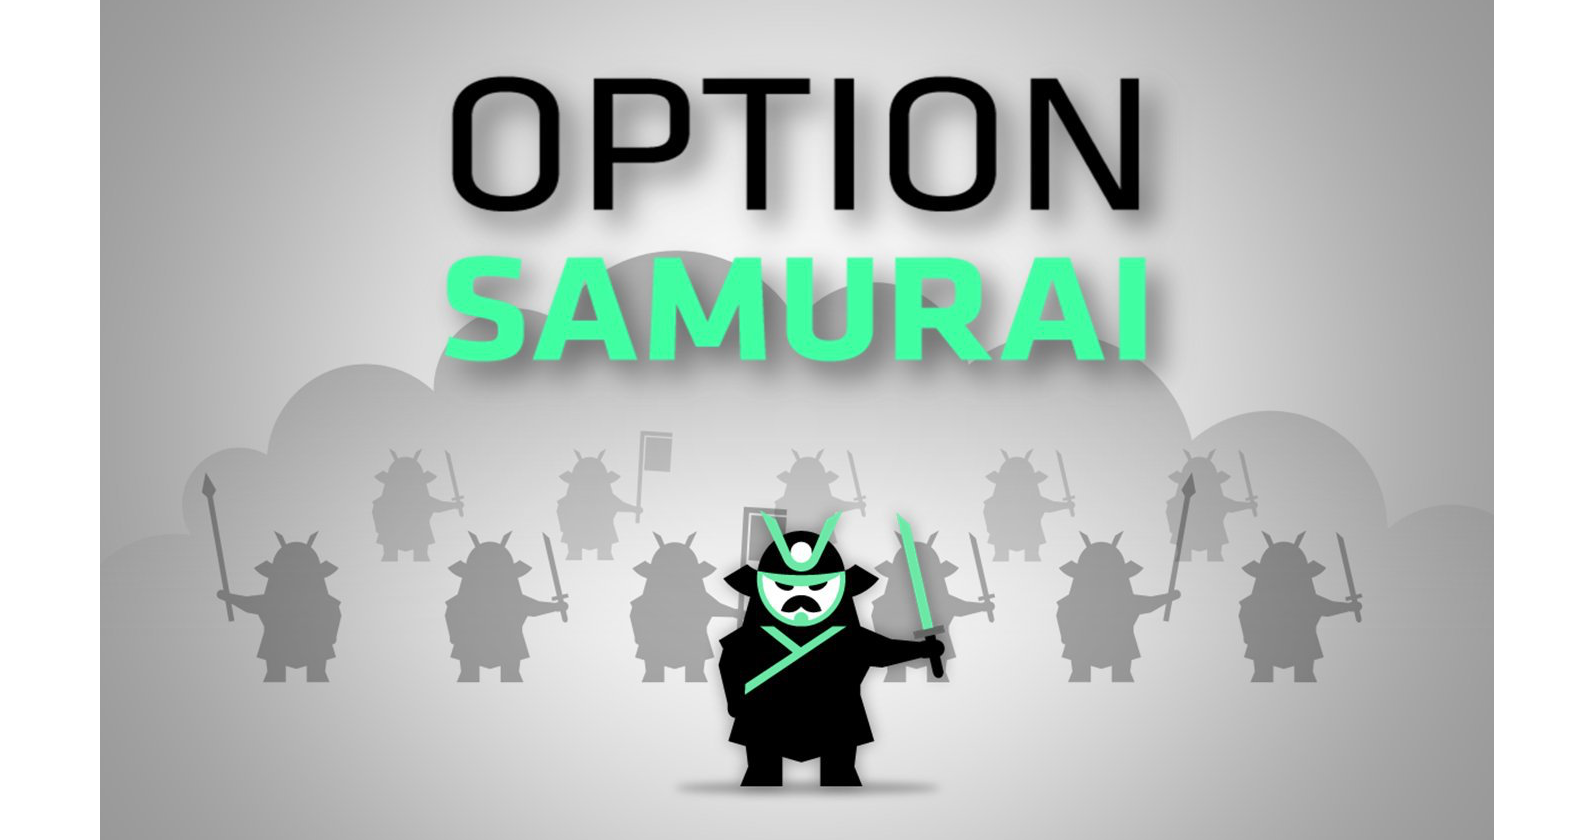 optionsamurai1.png